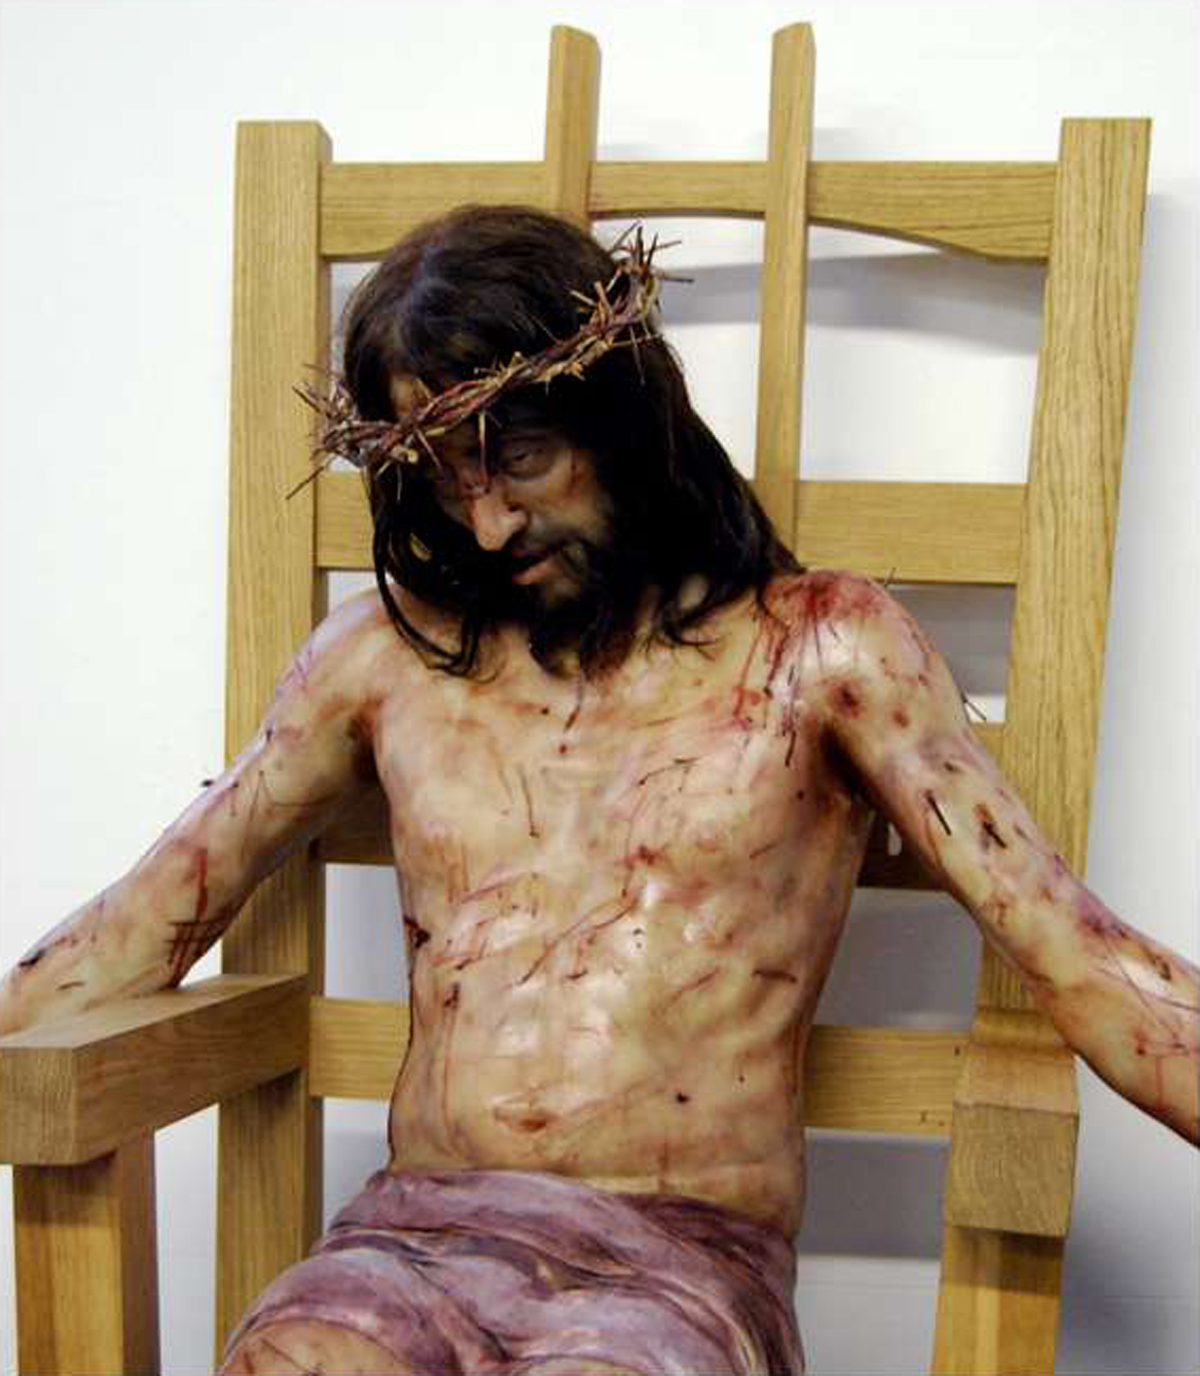 Pieta (All Flesh Is Grass), 2006